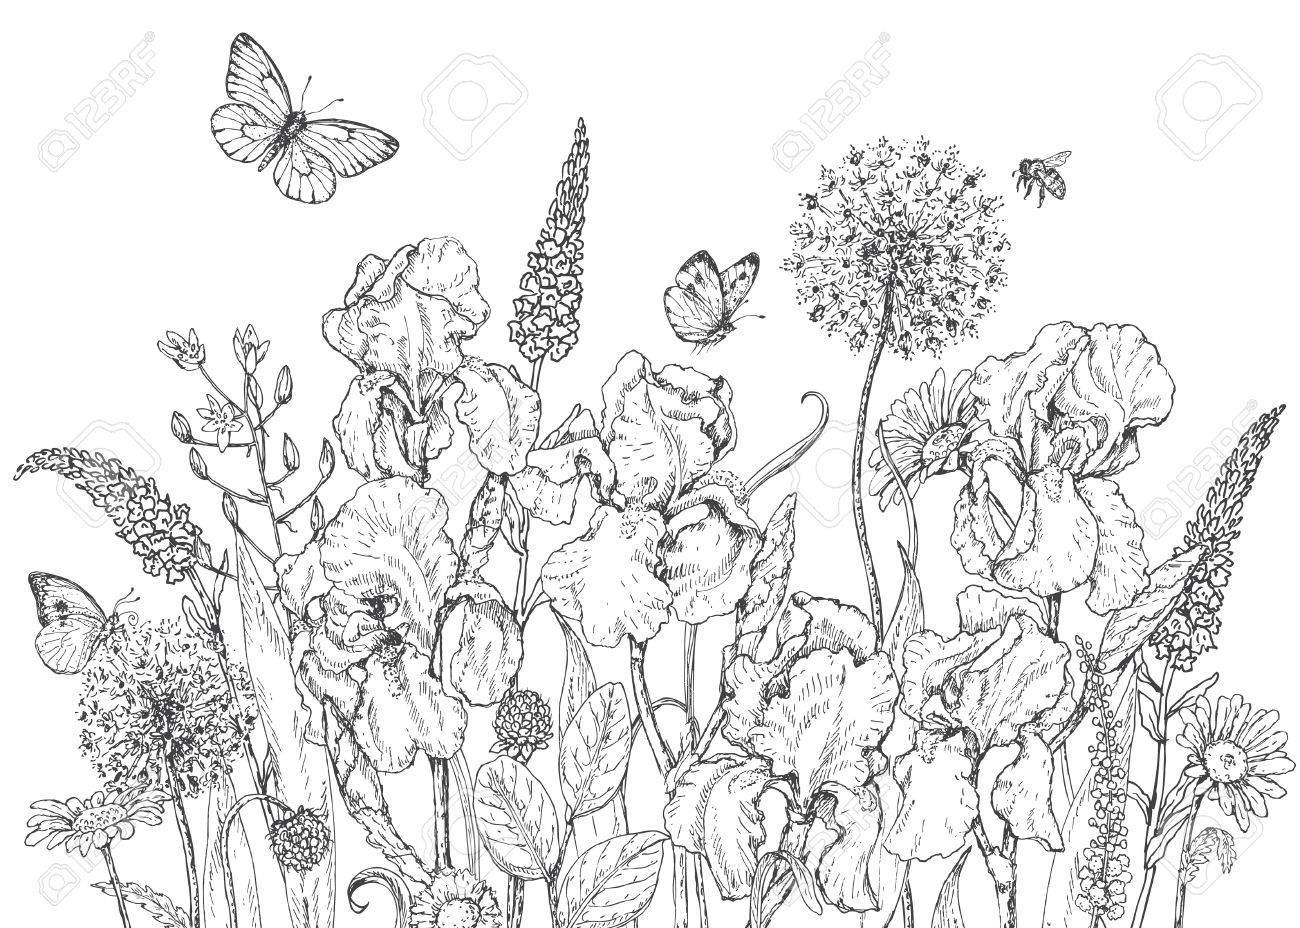 Download Our Printable Wildflower Coloring Pages | Texas Highways | 928x1300